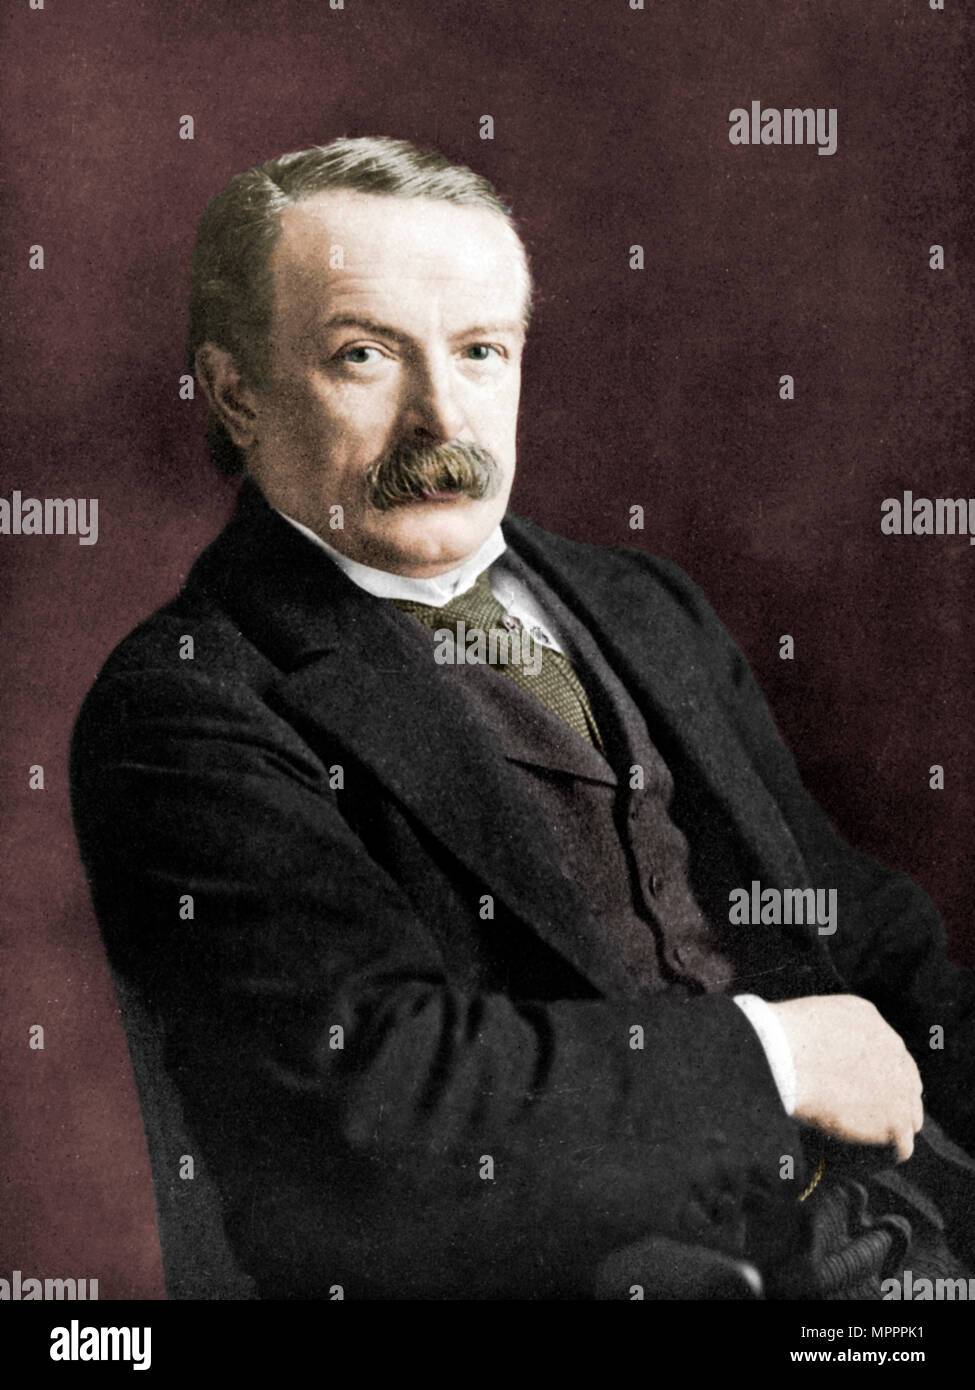 David Lloyd George, British politician, c1920. Artist: Haines. - Stock Image